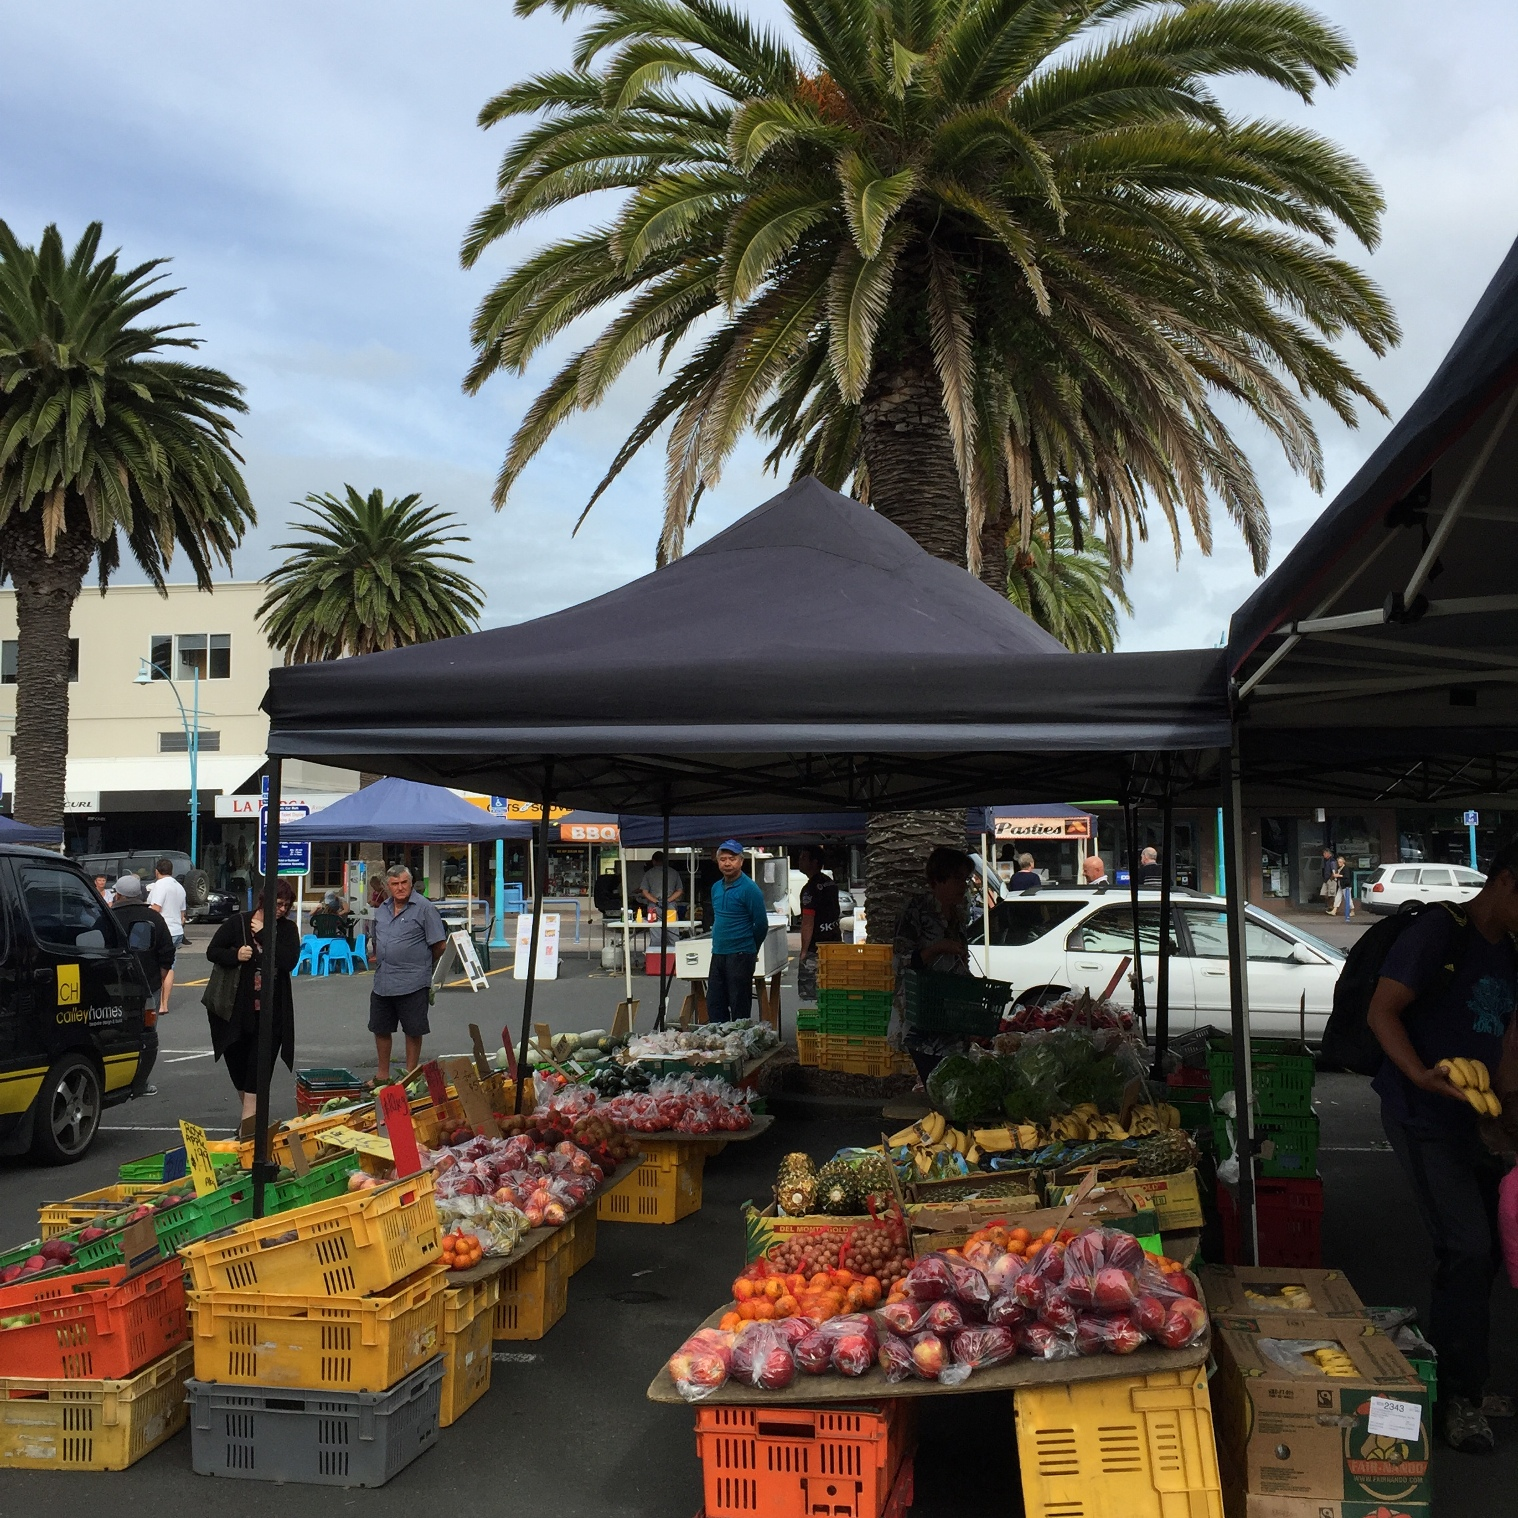 Sunday morning at Mt Maunganui farmers market